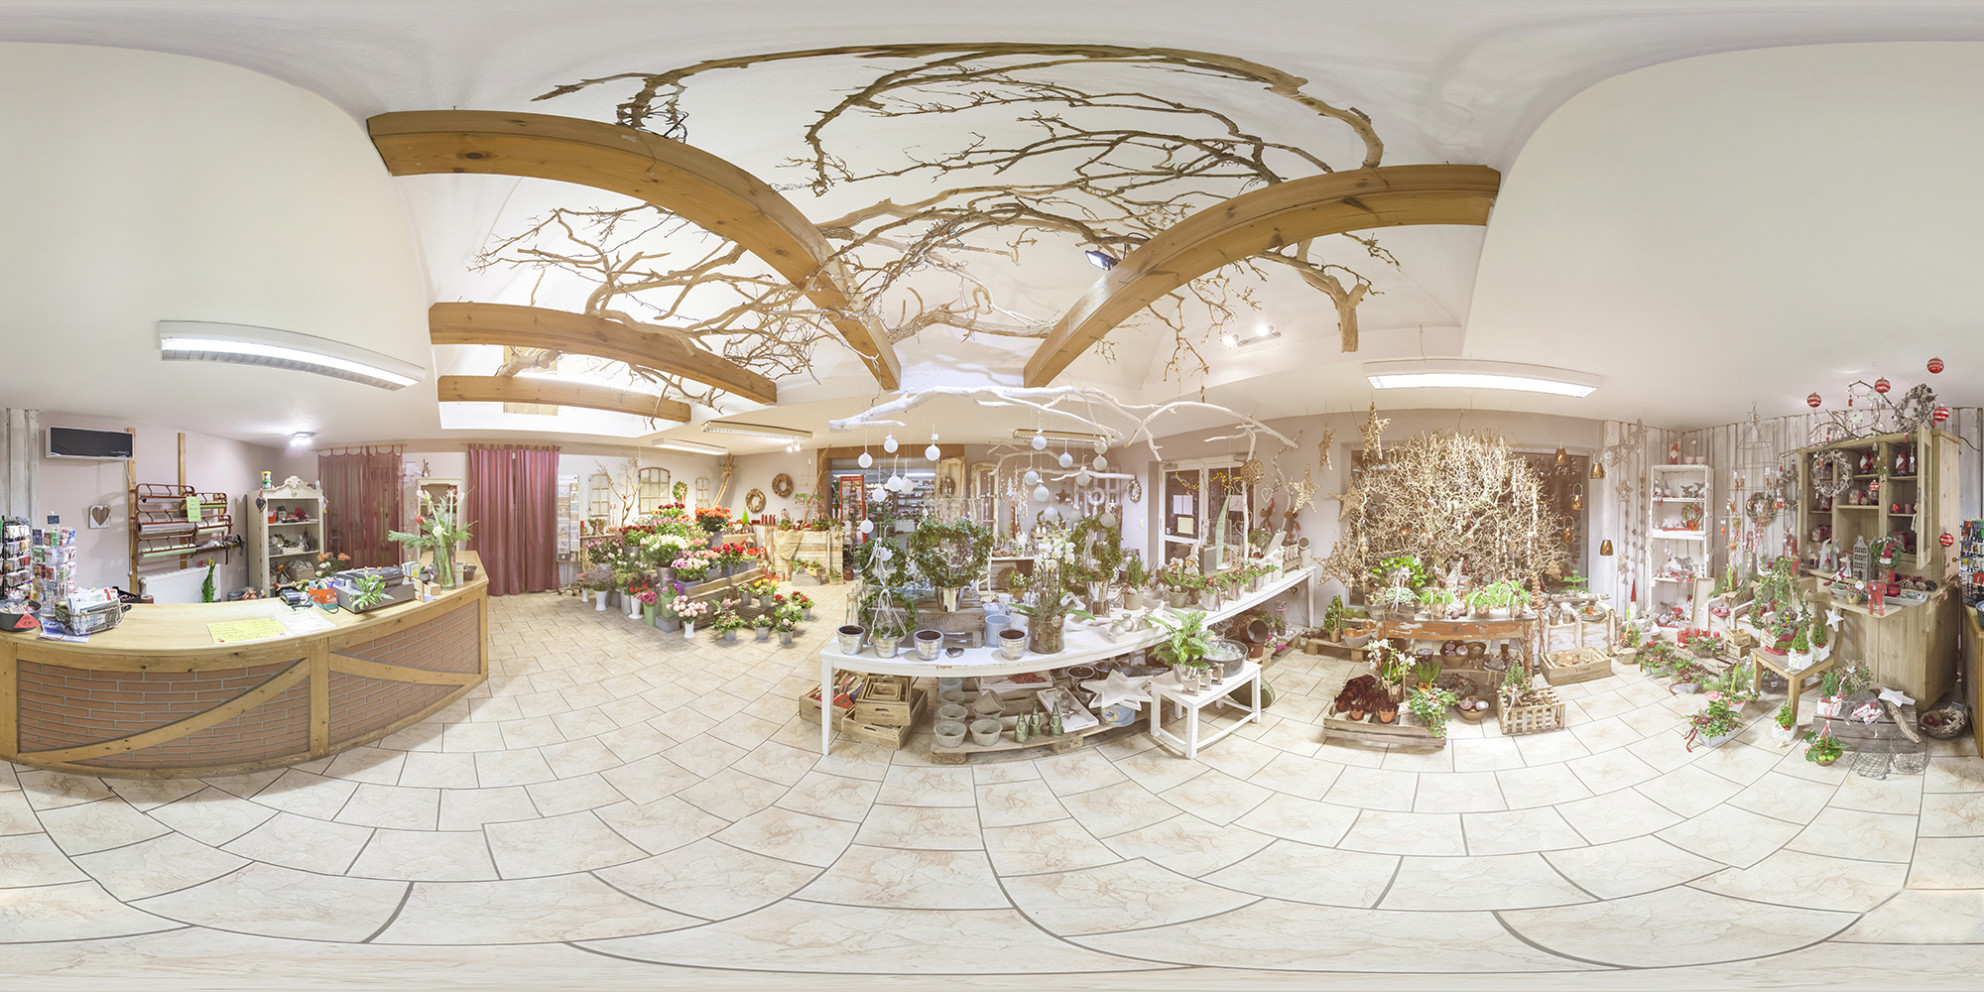 360, virtual reality, virtual tour, 360 degree, nursery, plant nursery, flower nursery, flower,